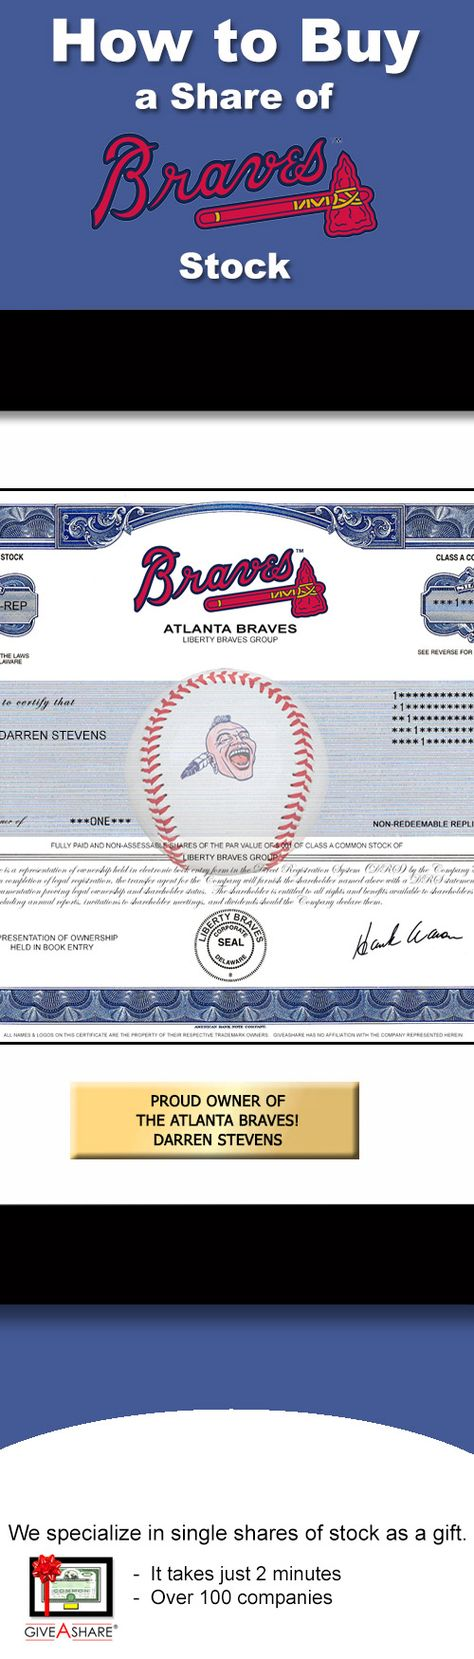 Perfect gift for a baseball fan, particularly an Atlanta Braves fan!